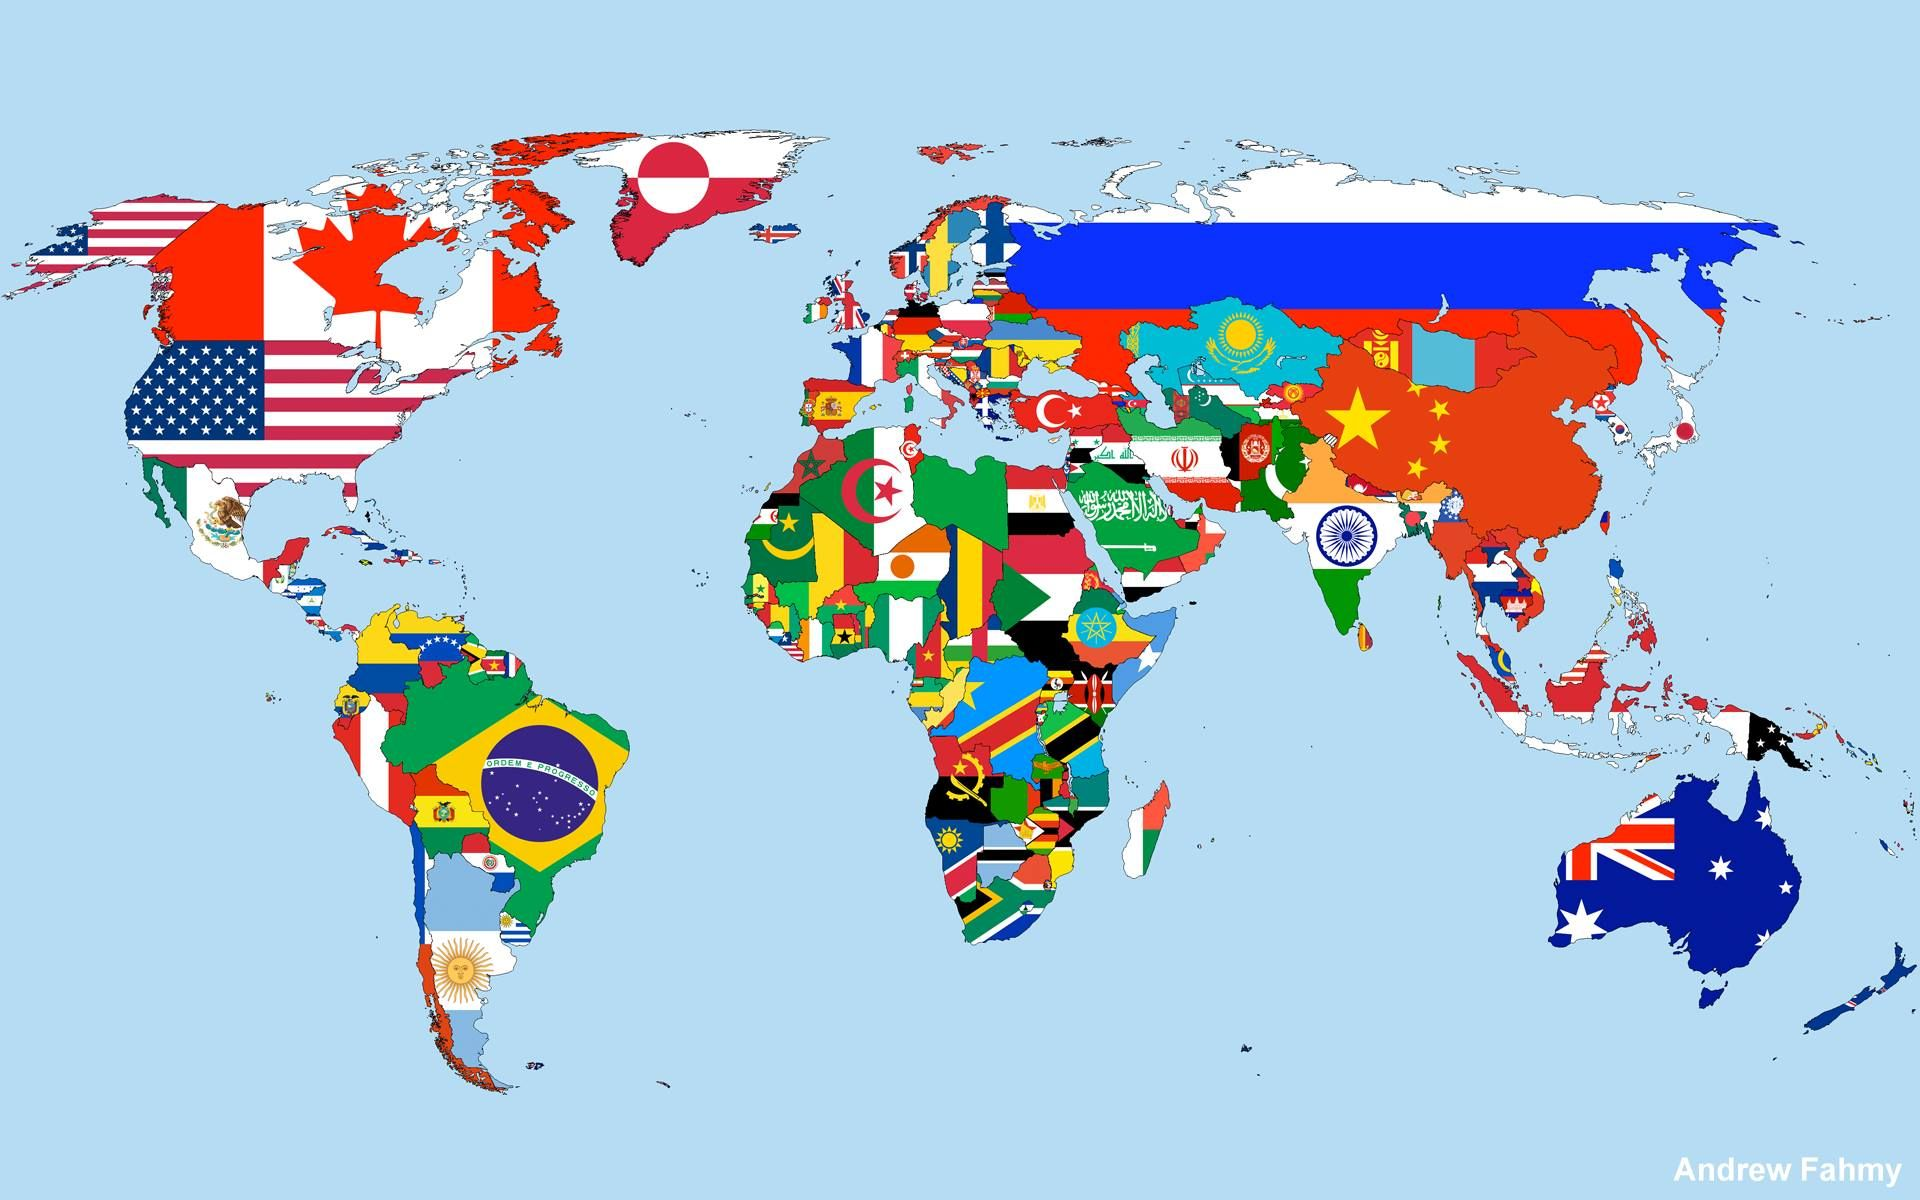 So Cool All About Tattoos Flags Of The World World Map With